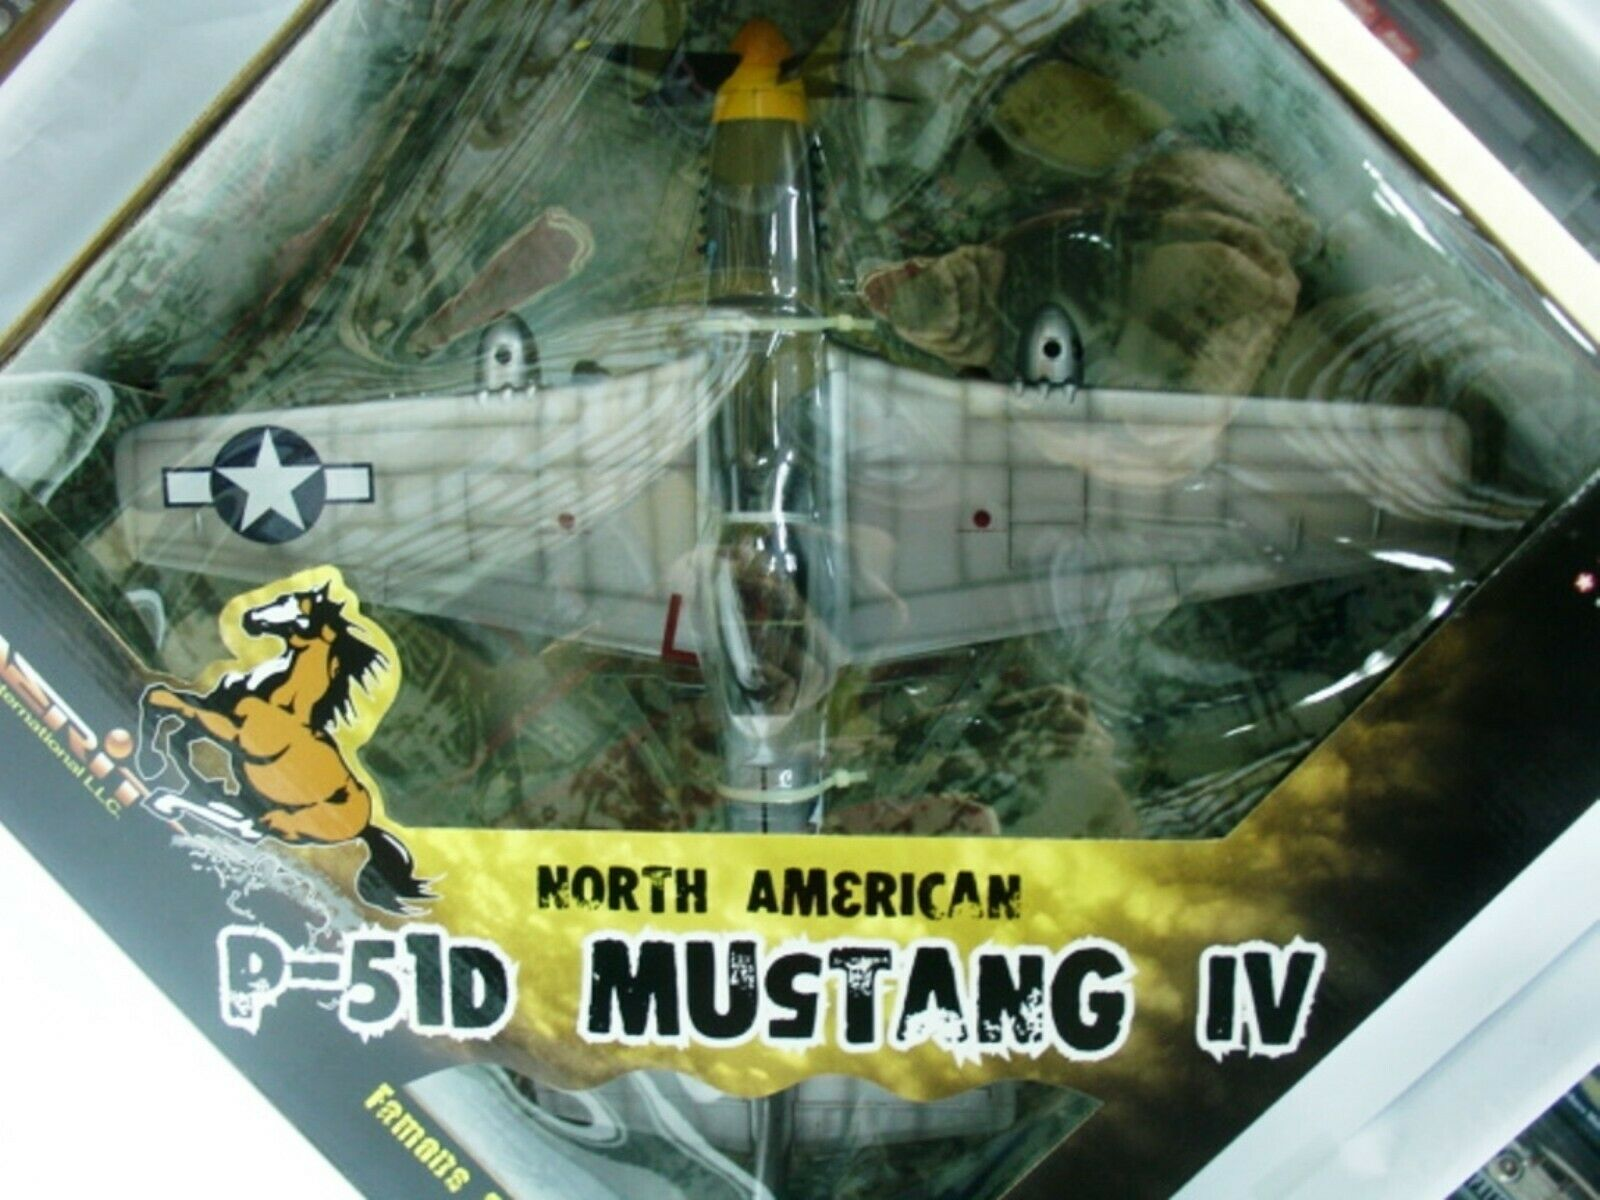 Extra Rare Mustang P-51D faible Eagle eagleston 1945 Entièrement neuf dans sa boîte 1 24 Merit-WITTY WINGS